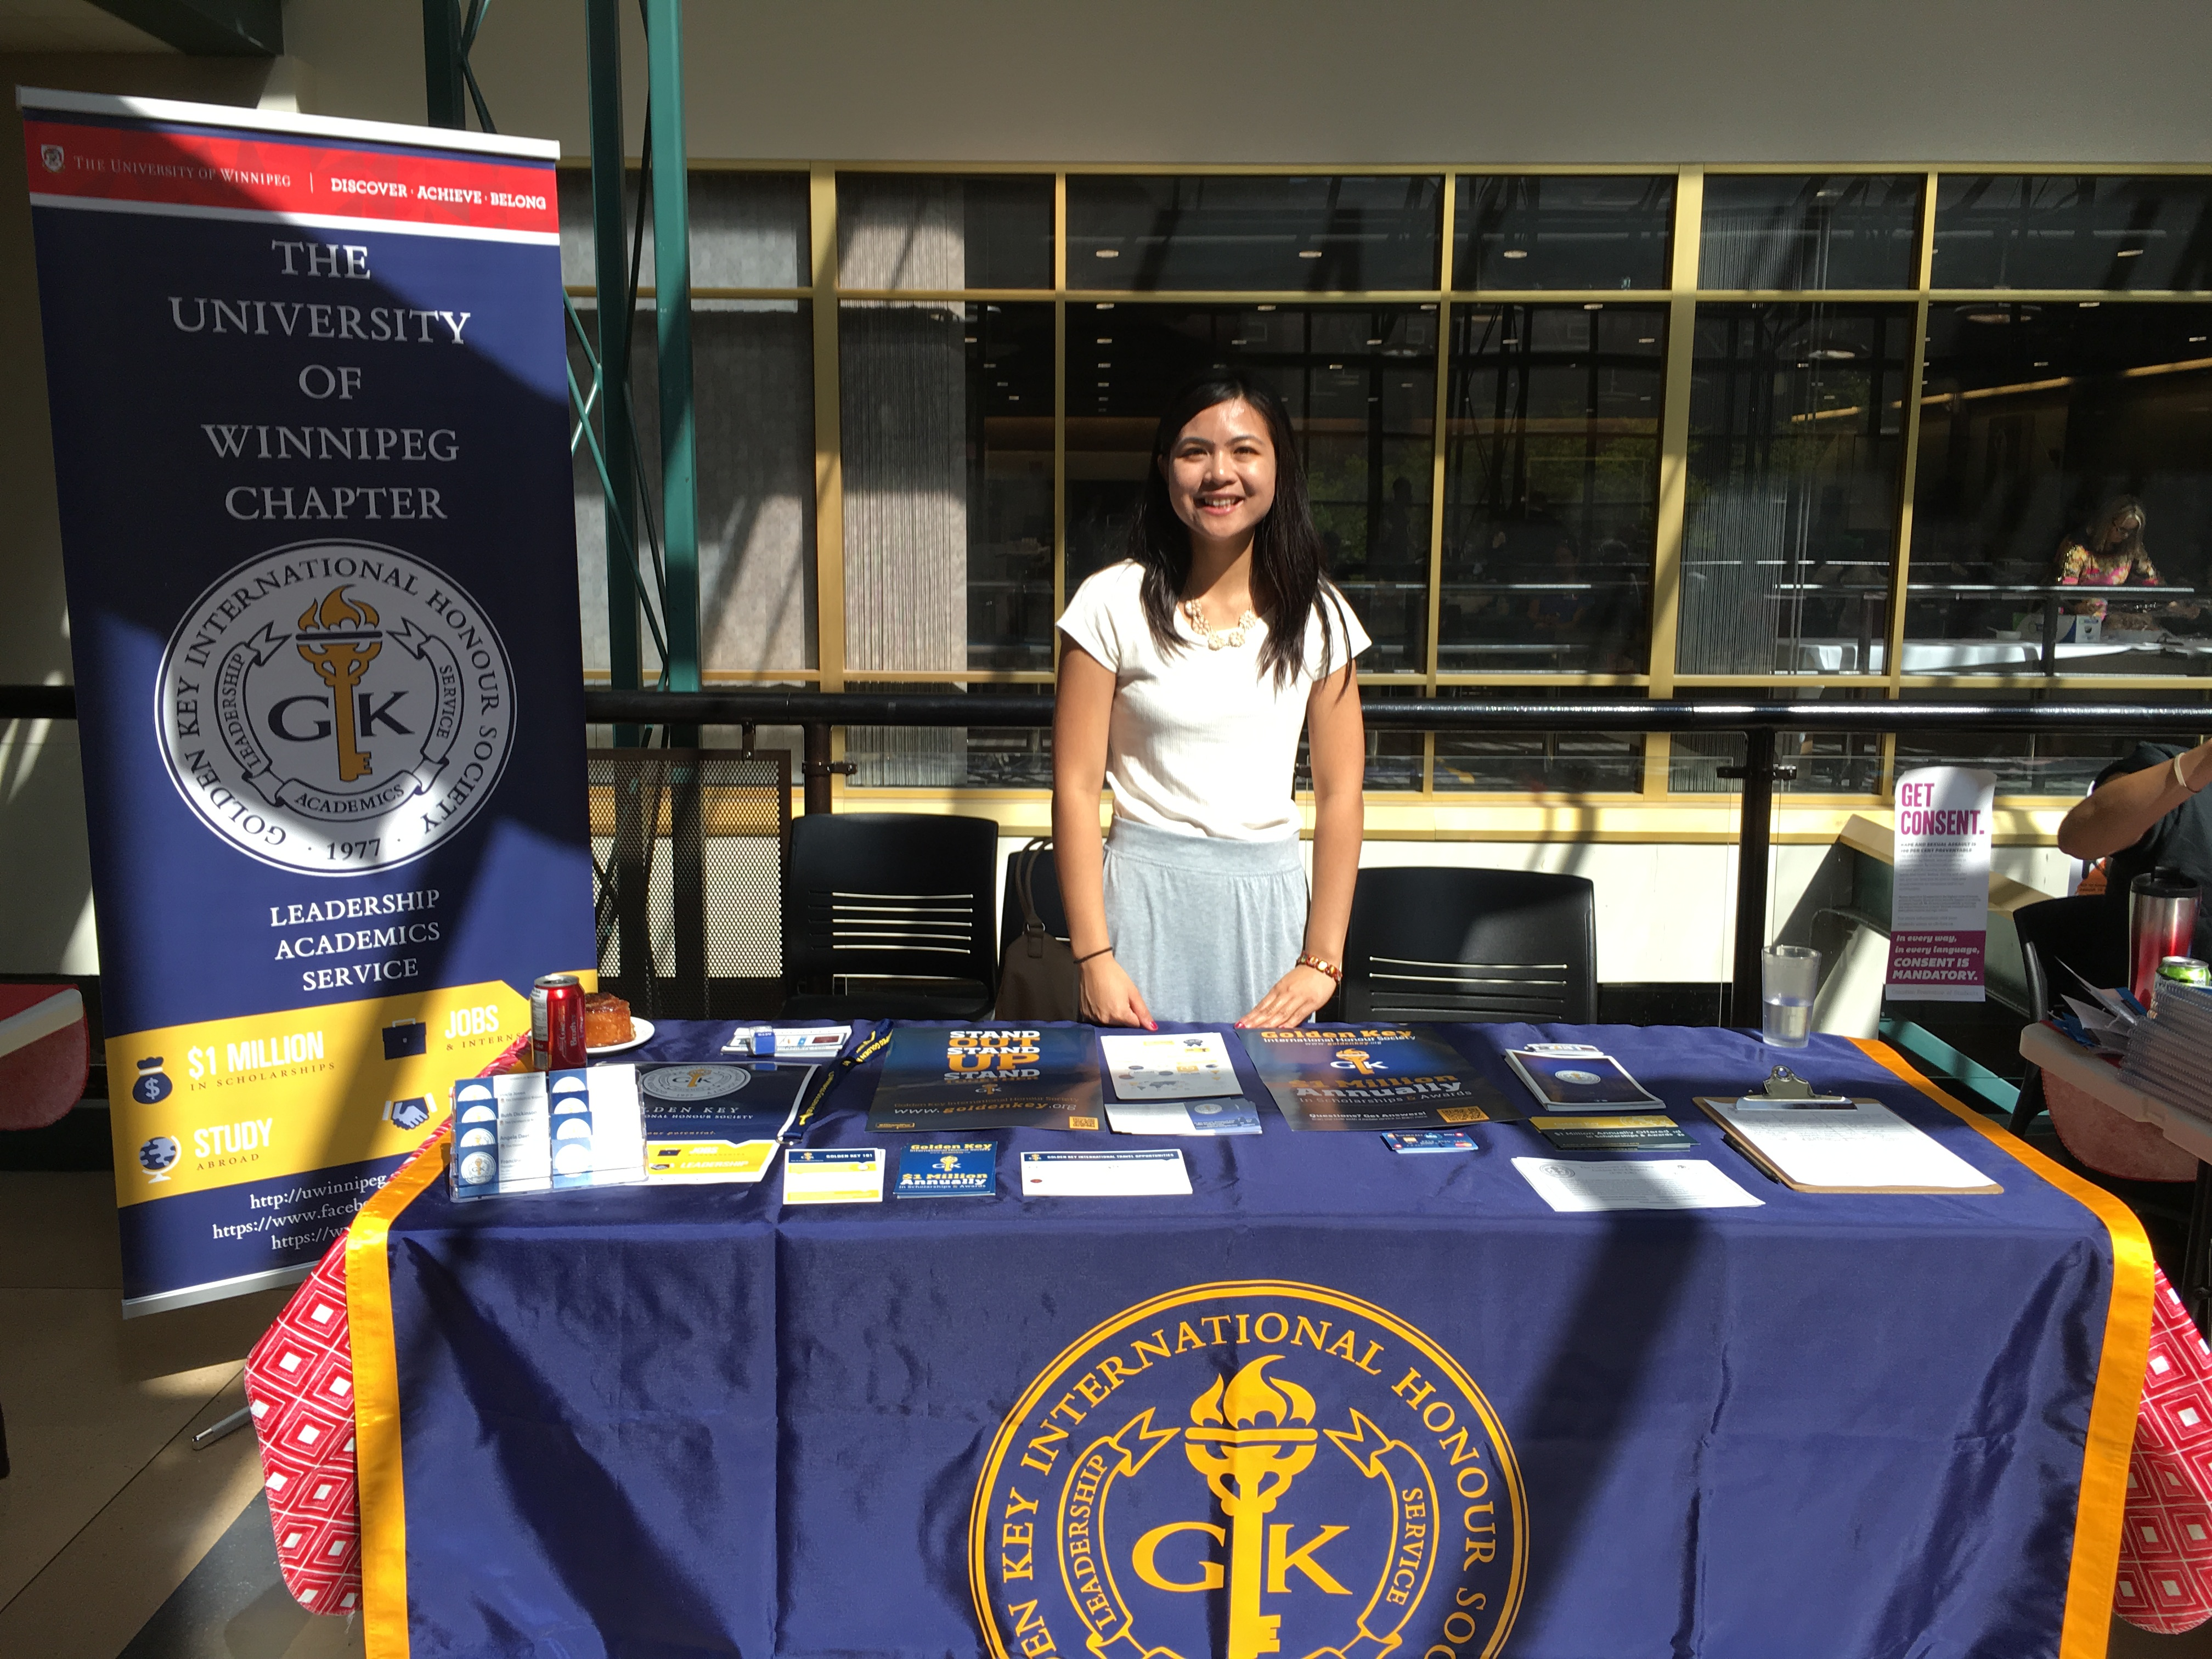 First Year Orientation Table August 29-30, 2016